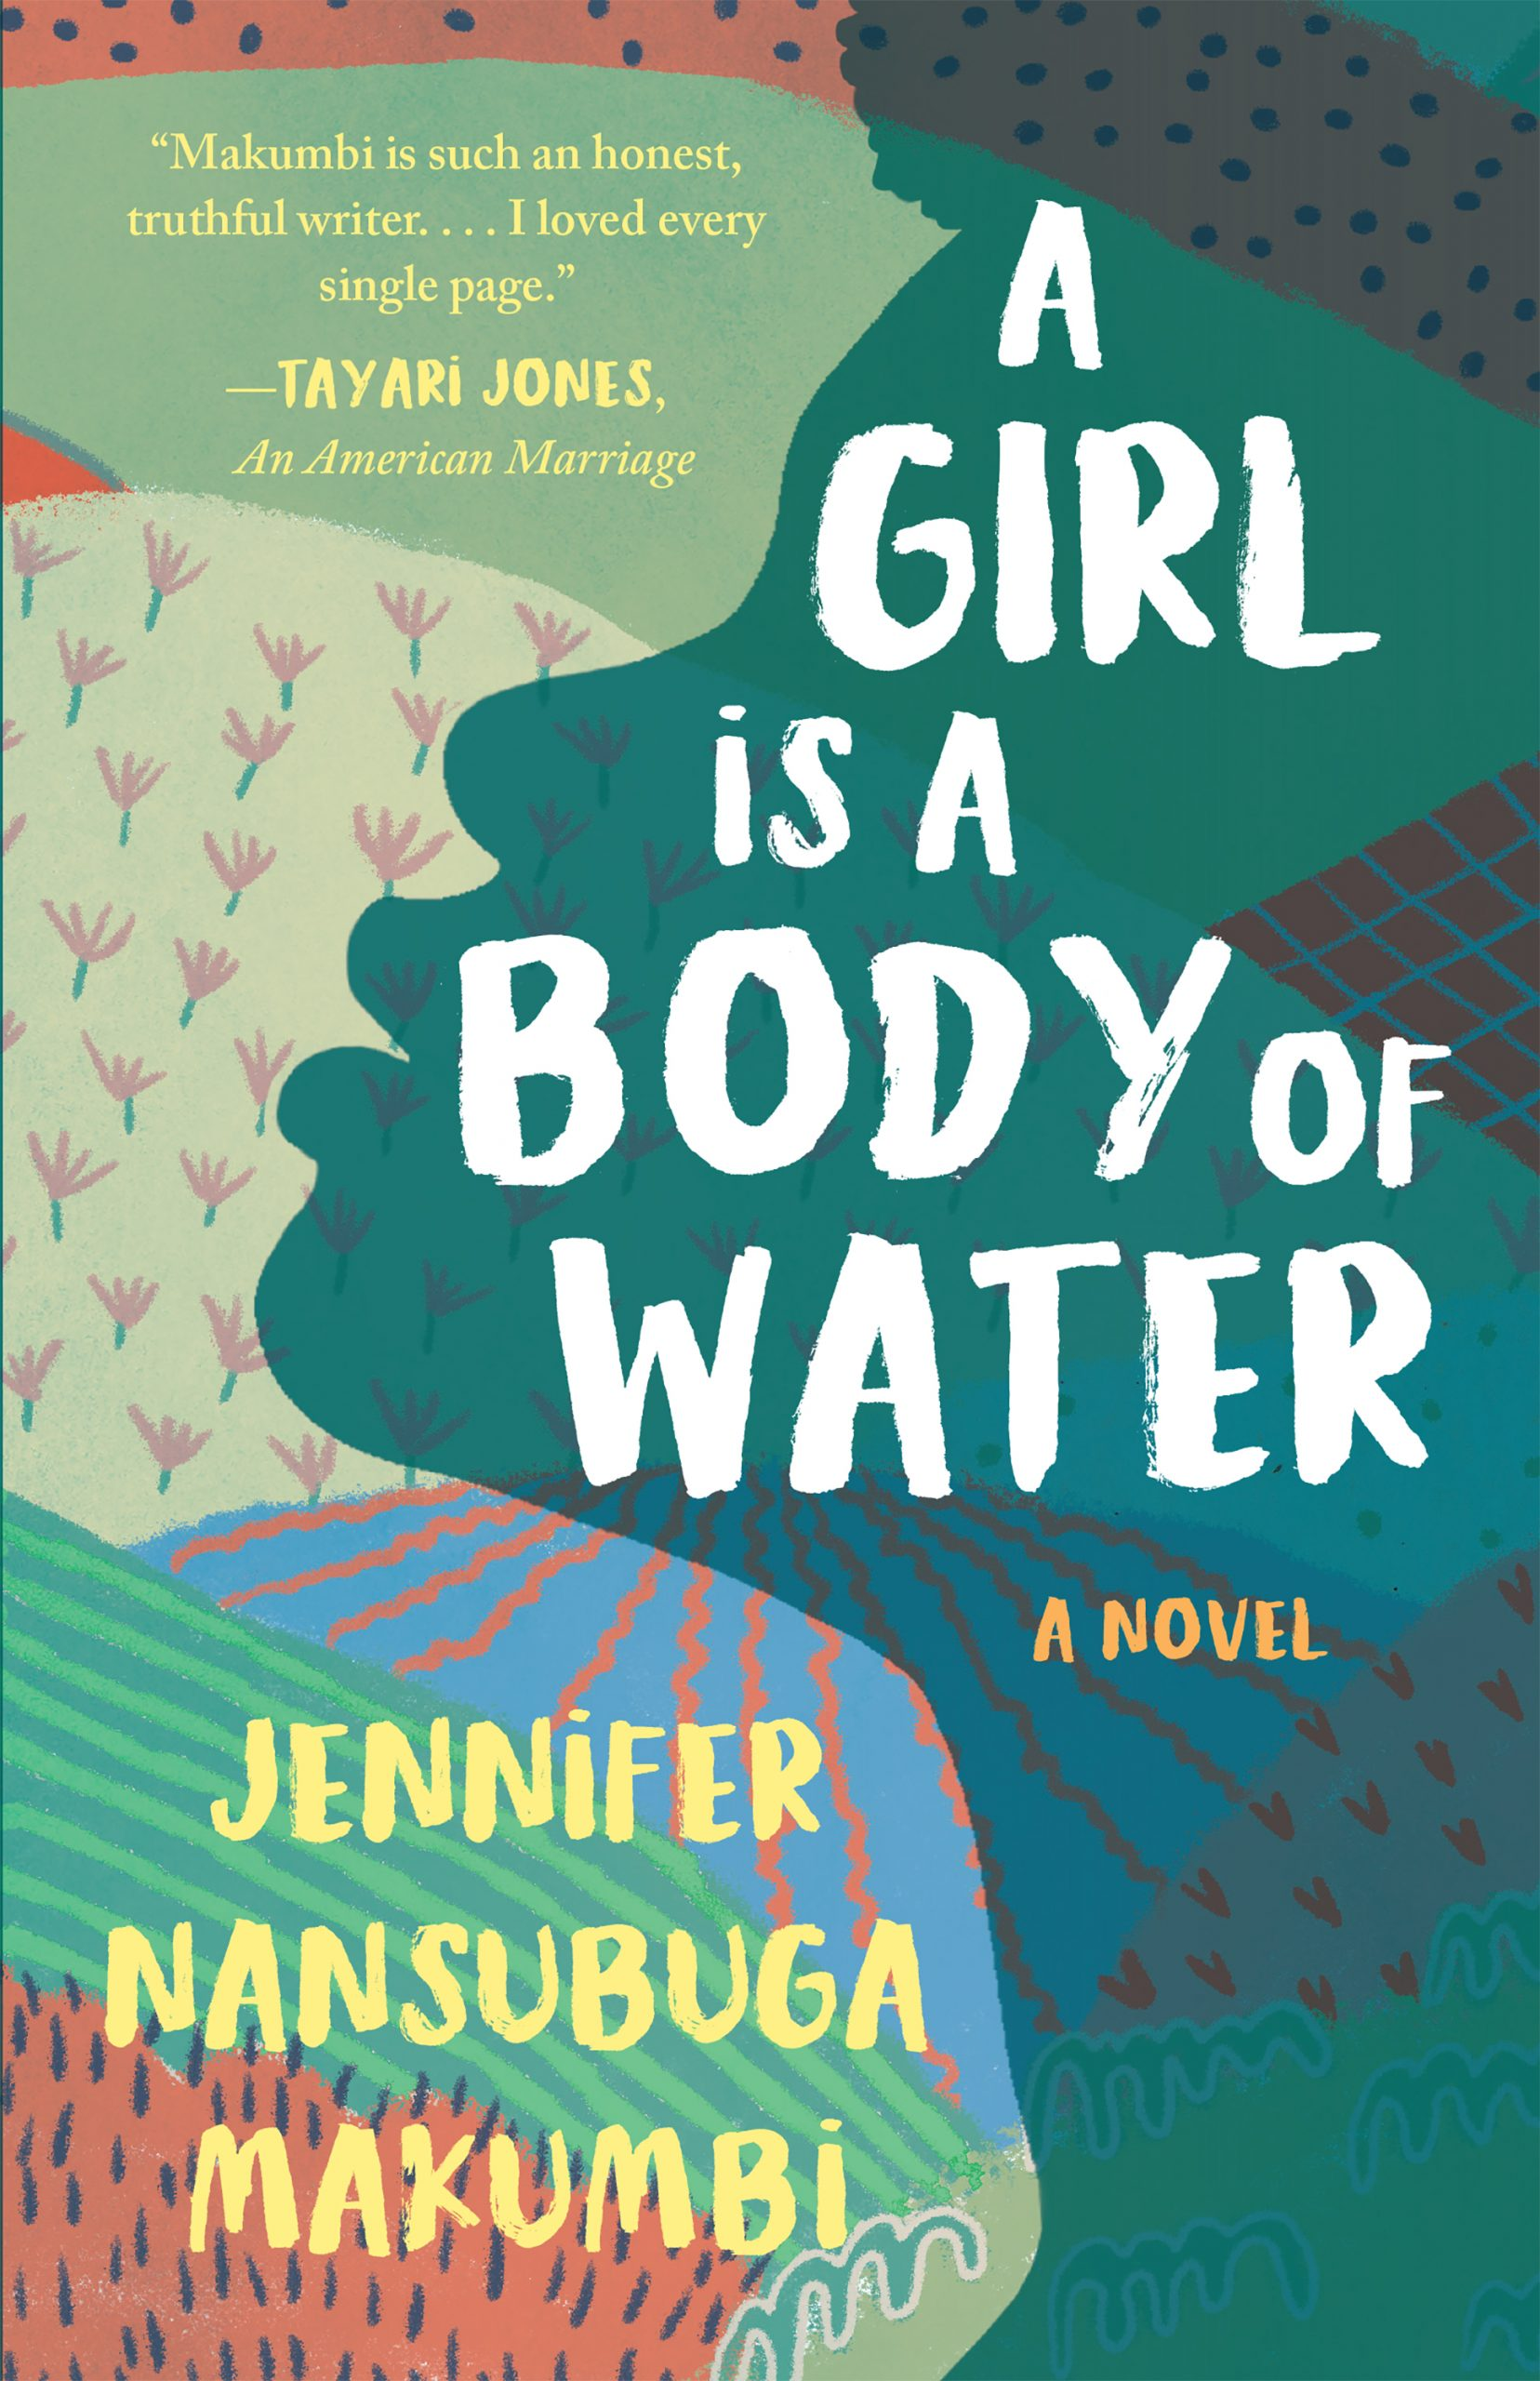 Book cover for A Girl is a Body of Water.